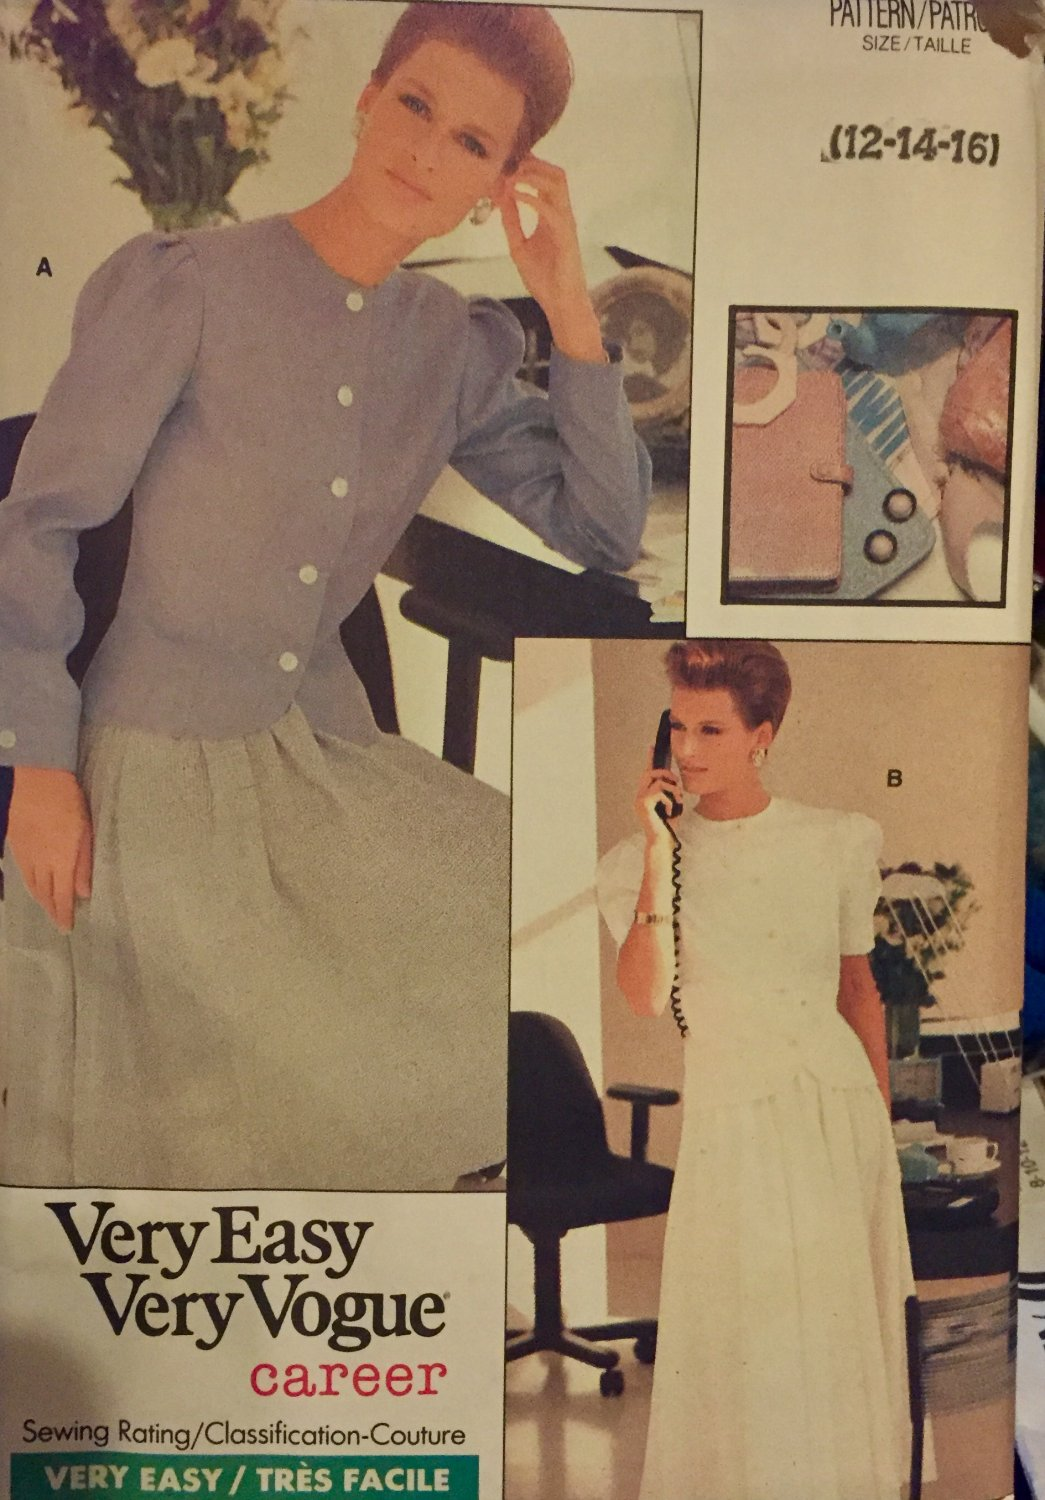 Vogue 7119 sewing pattern size 12 14 16 Misses Top and Skirt Career